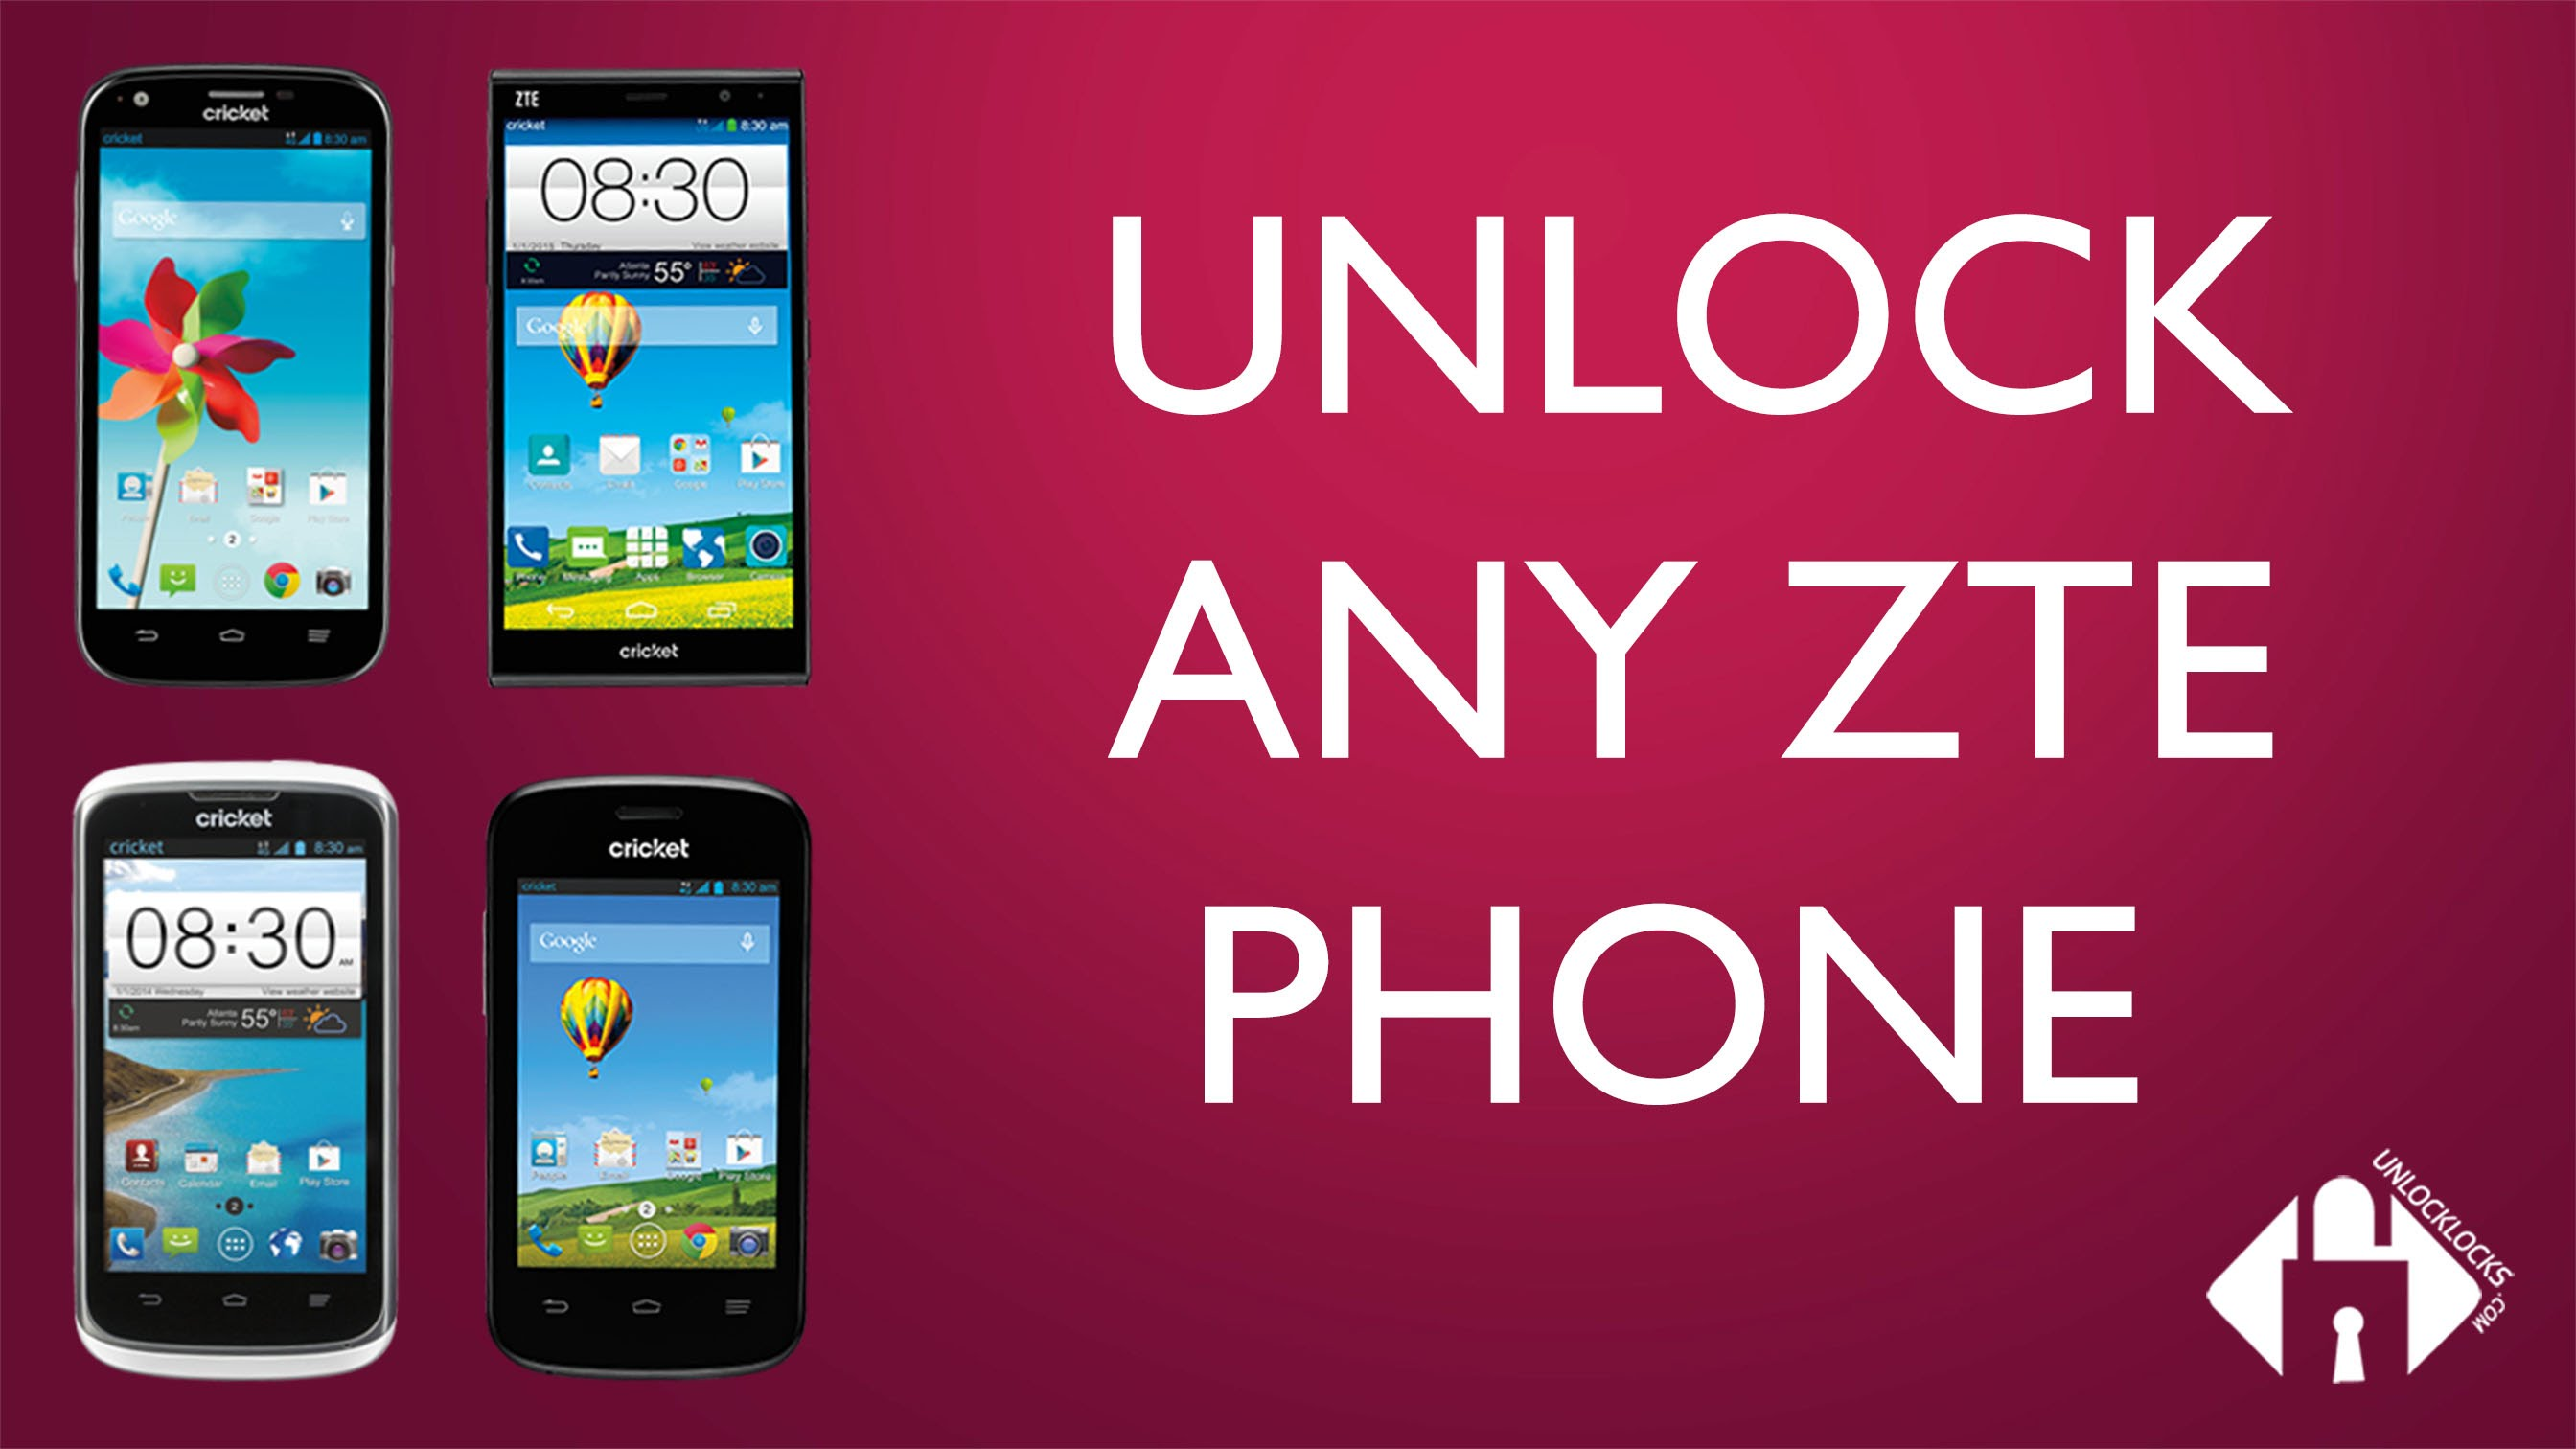 Top Five How To Unlock A Cricket Alcatel Phone For Free - Circus